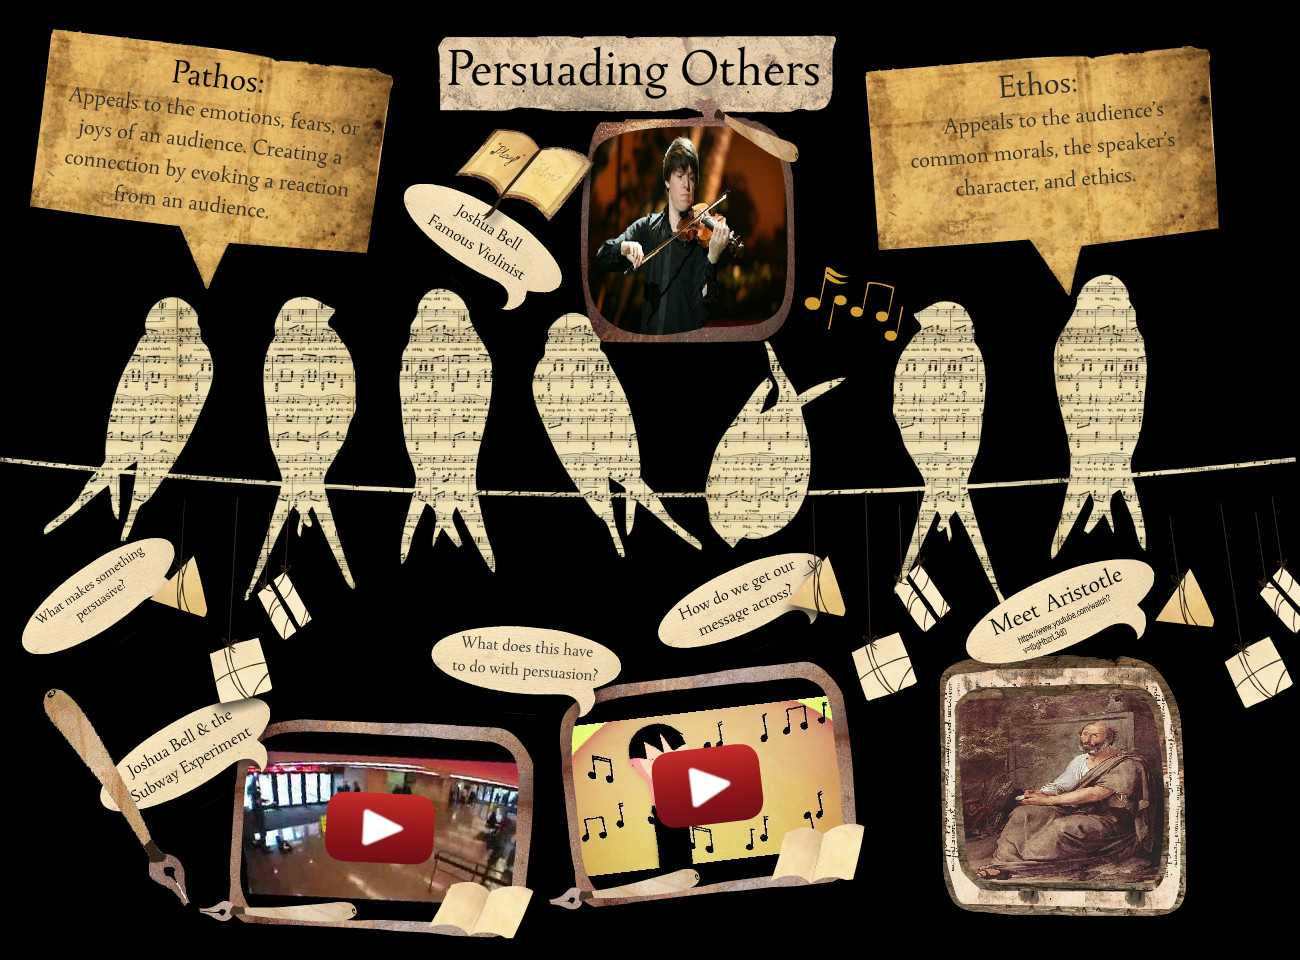 Persuading Others